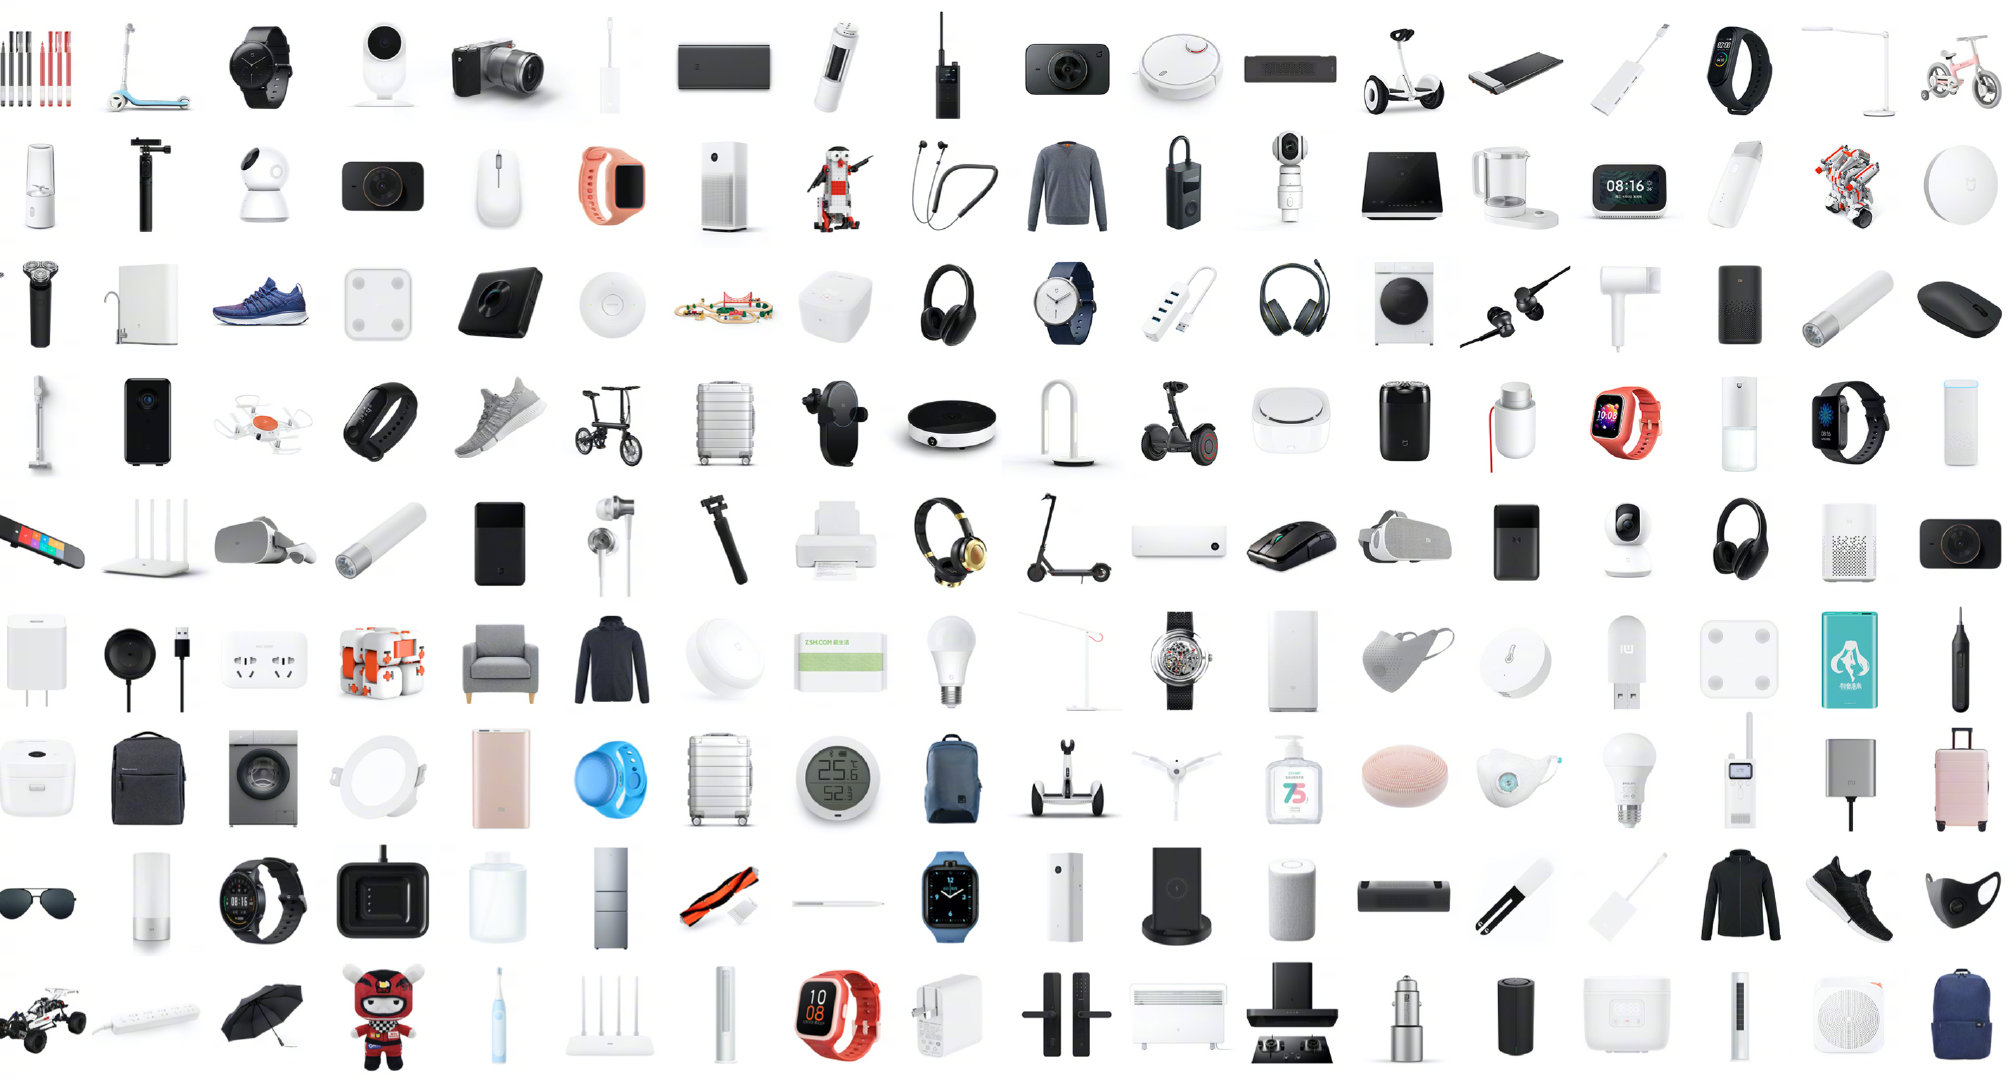 Here are the Best Xiaomi Products for a Smart Home